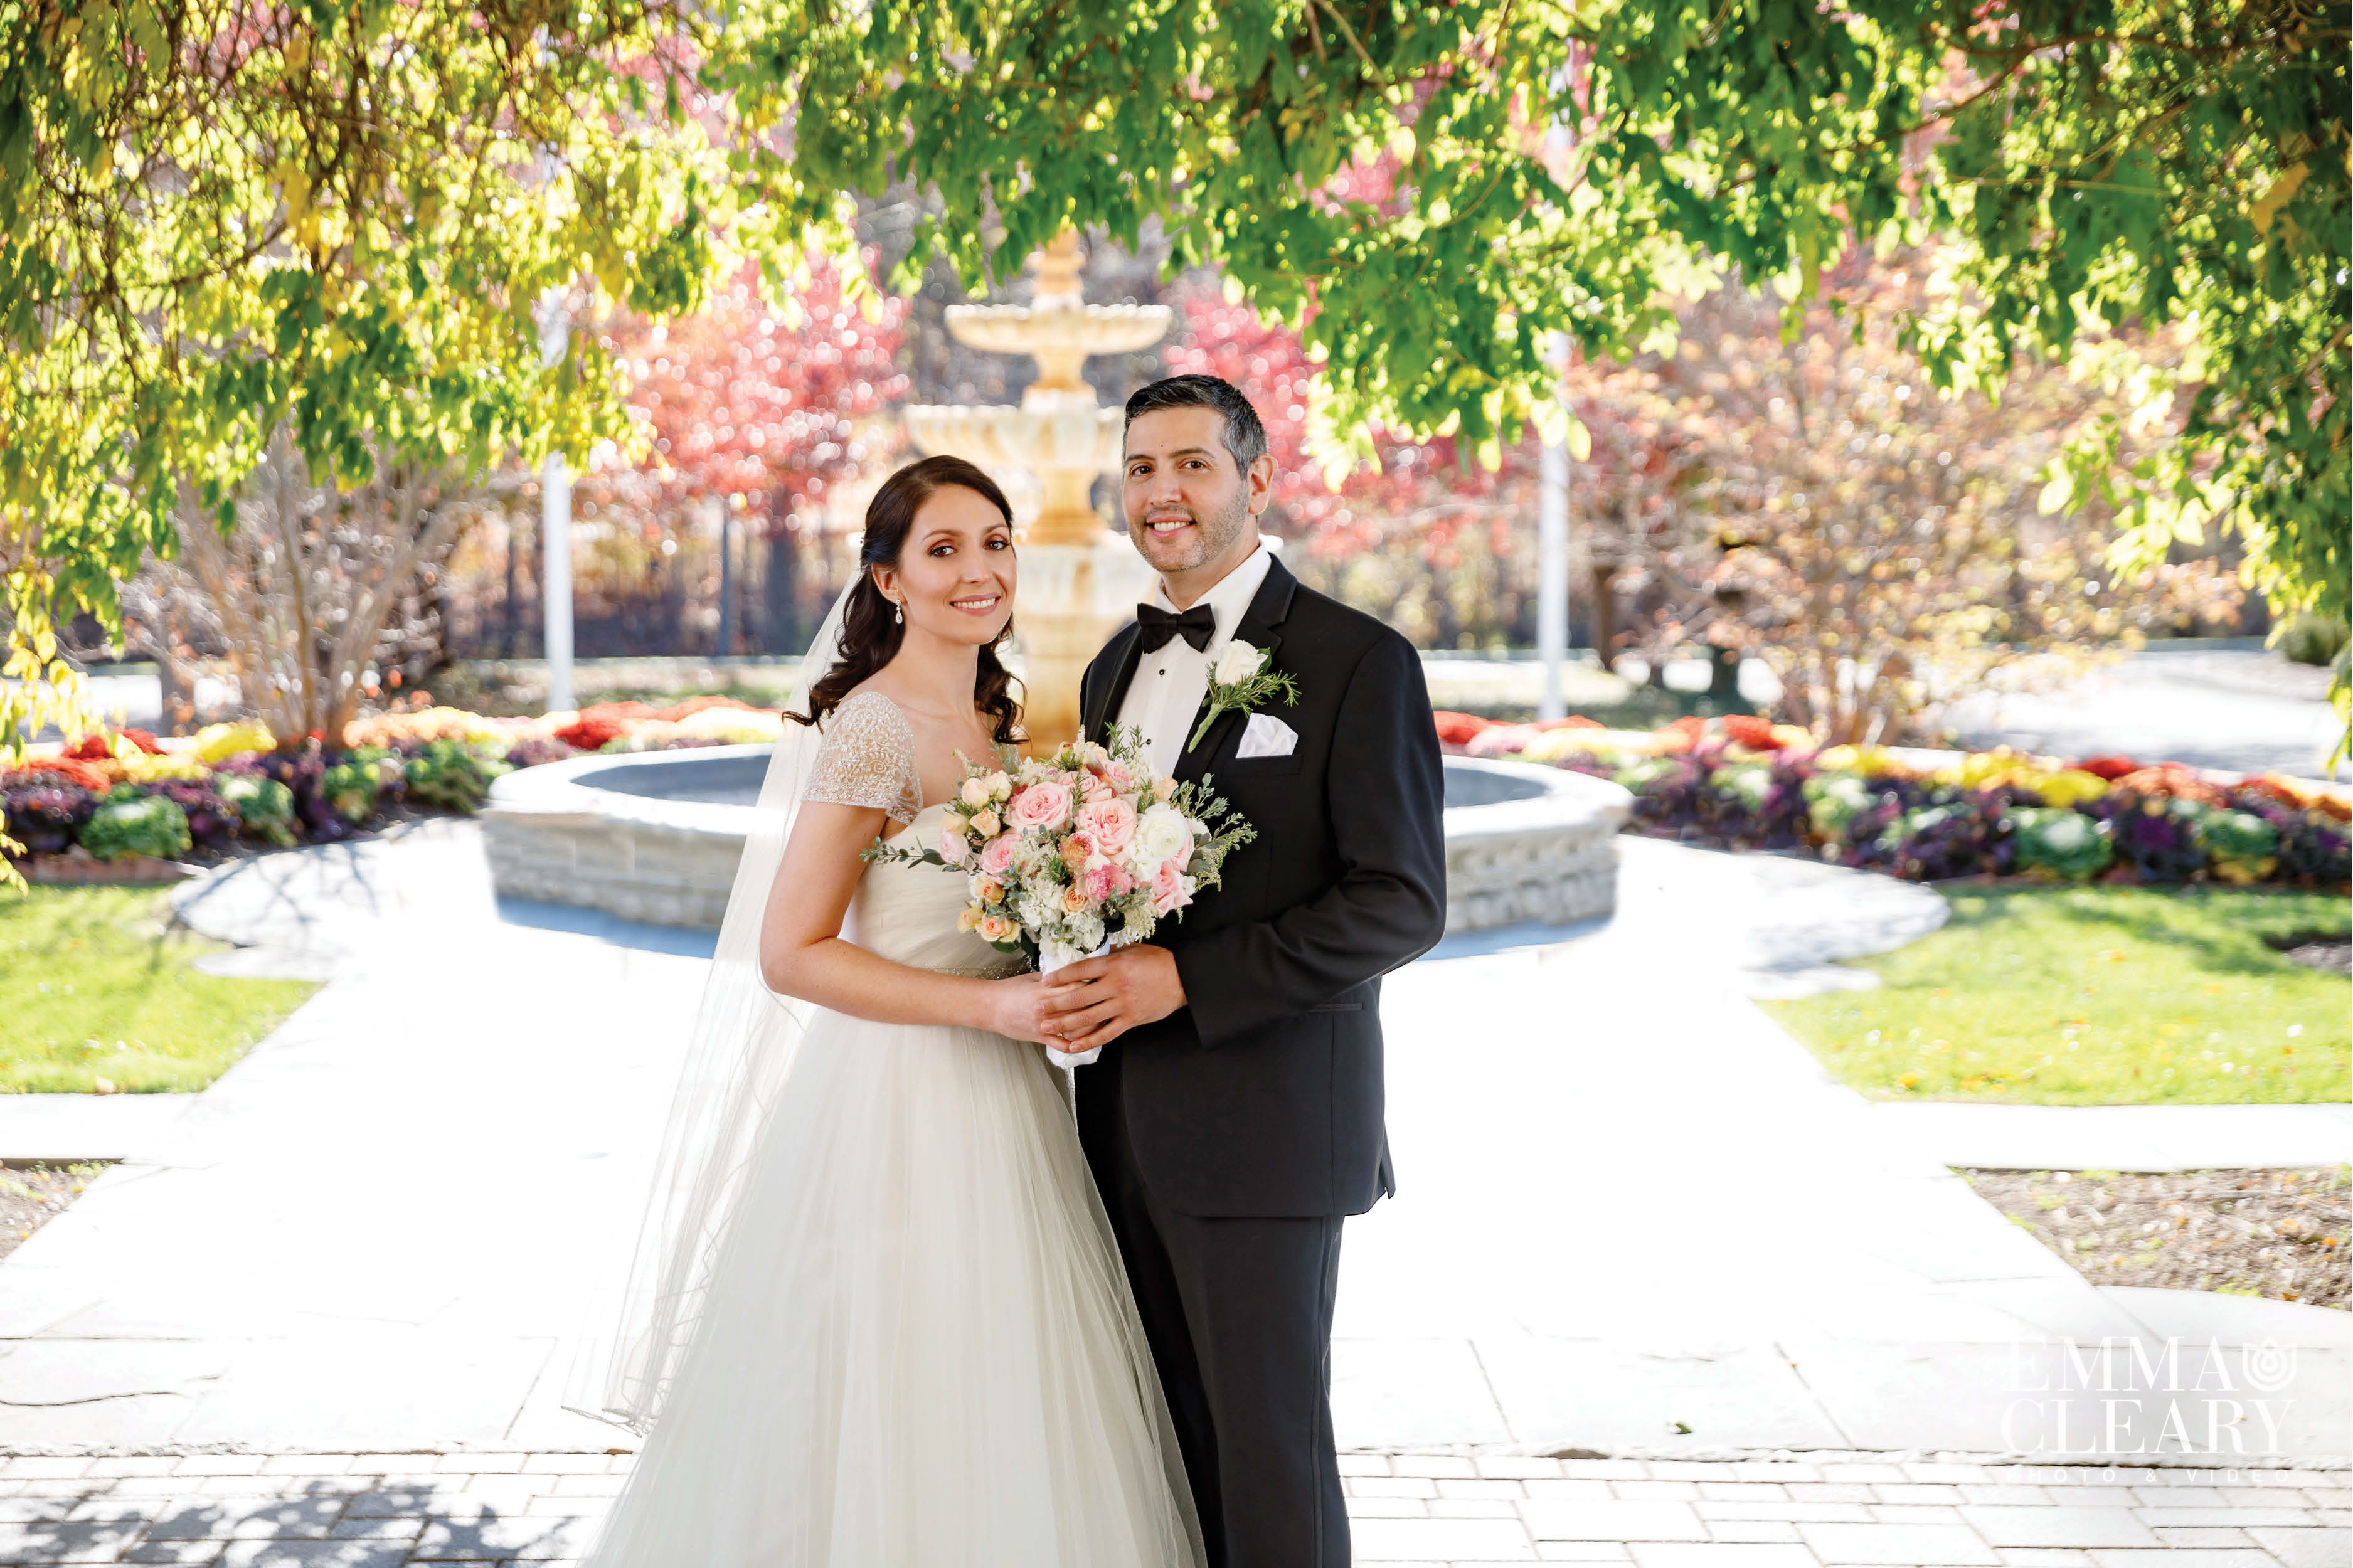 Emma_cleary_photography Hilton pearl river NY wedding13